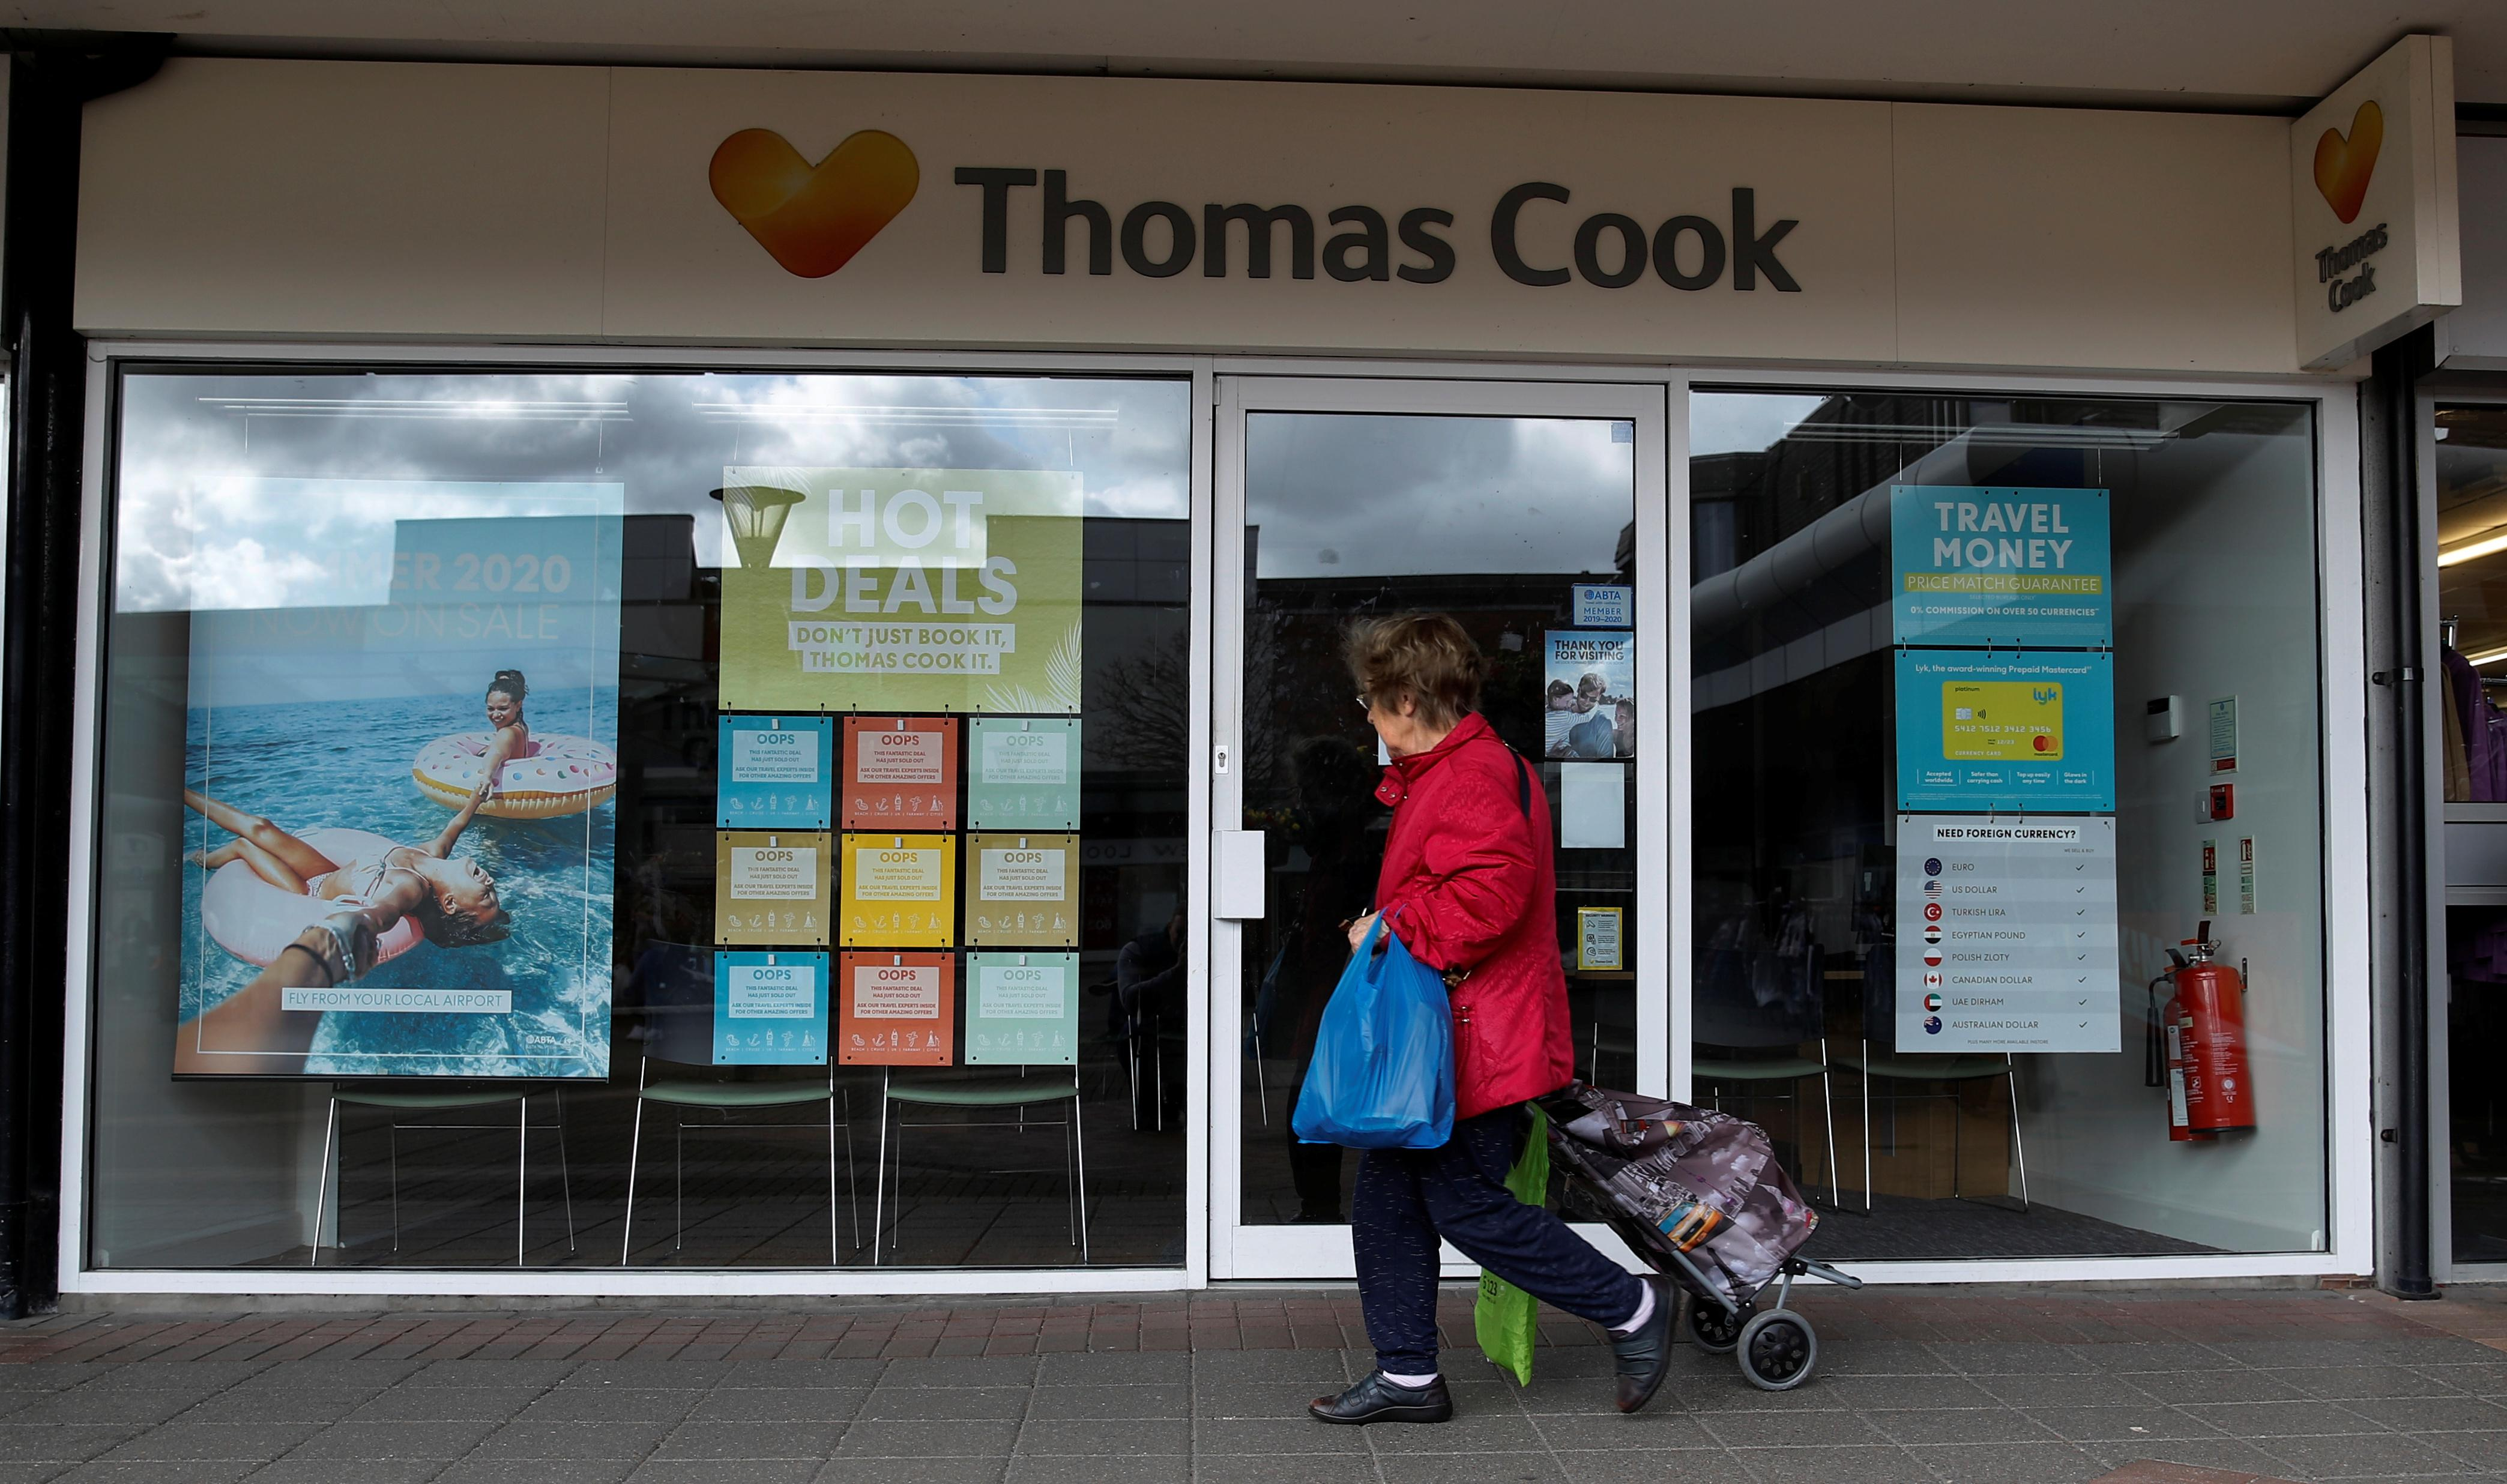 Germany confirms it will repay customers of insolvent Thomas Cook